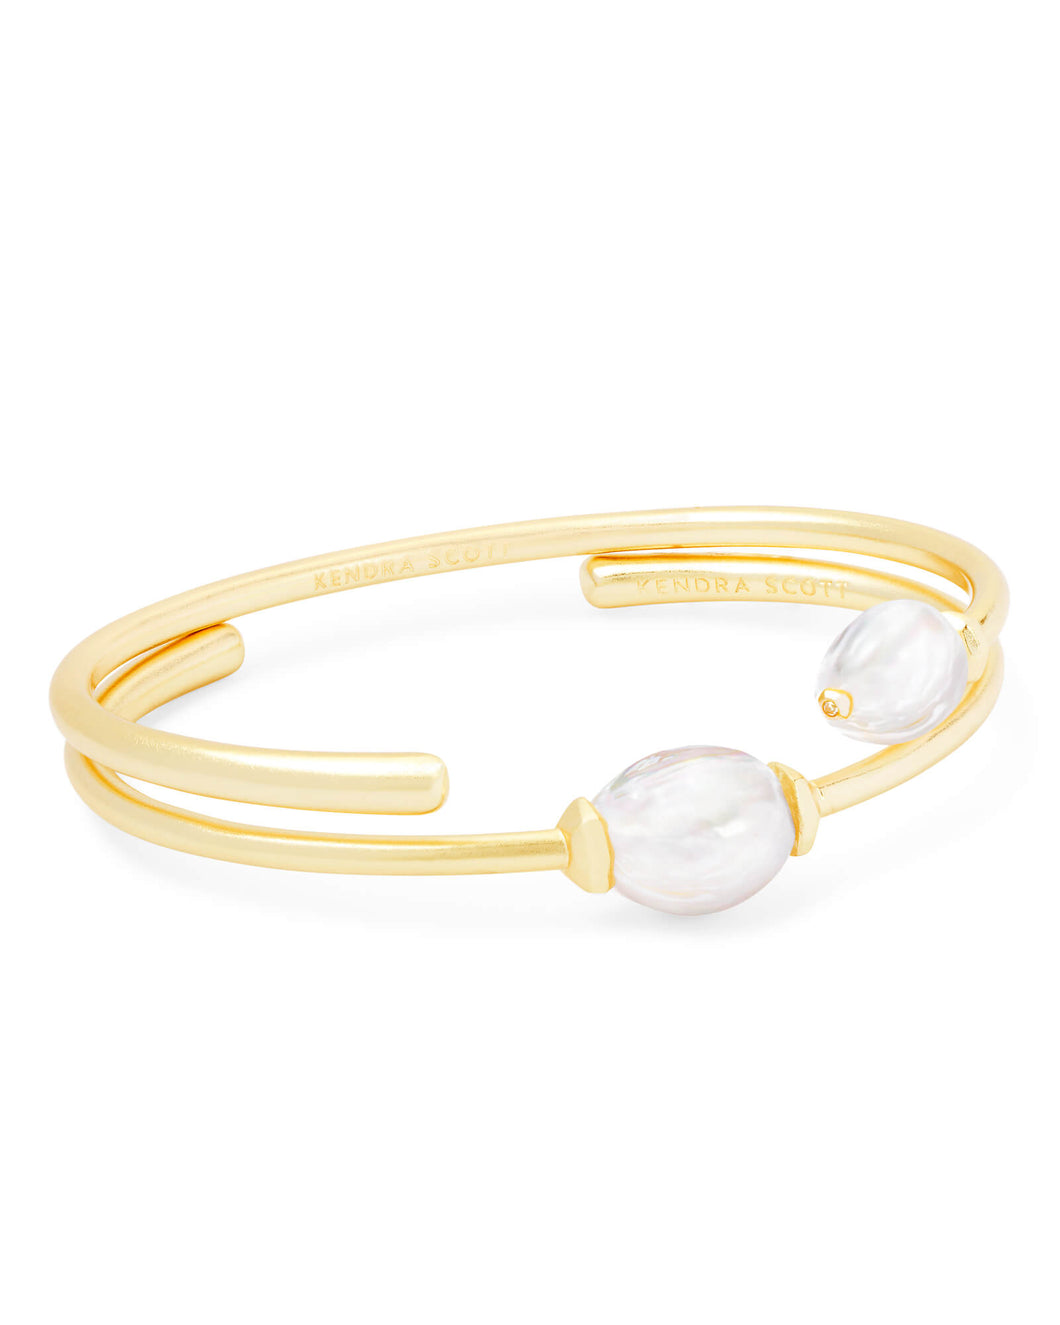 Kendra Scott Amiya Cuff in Gold/Baroque Pearl